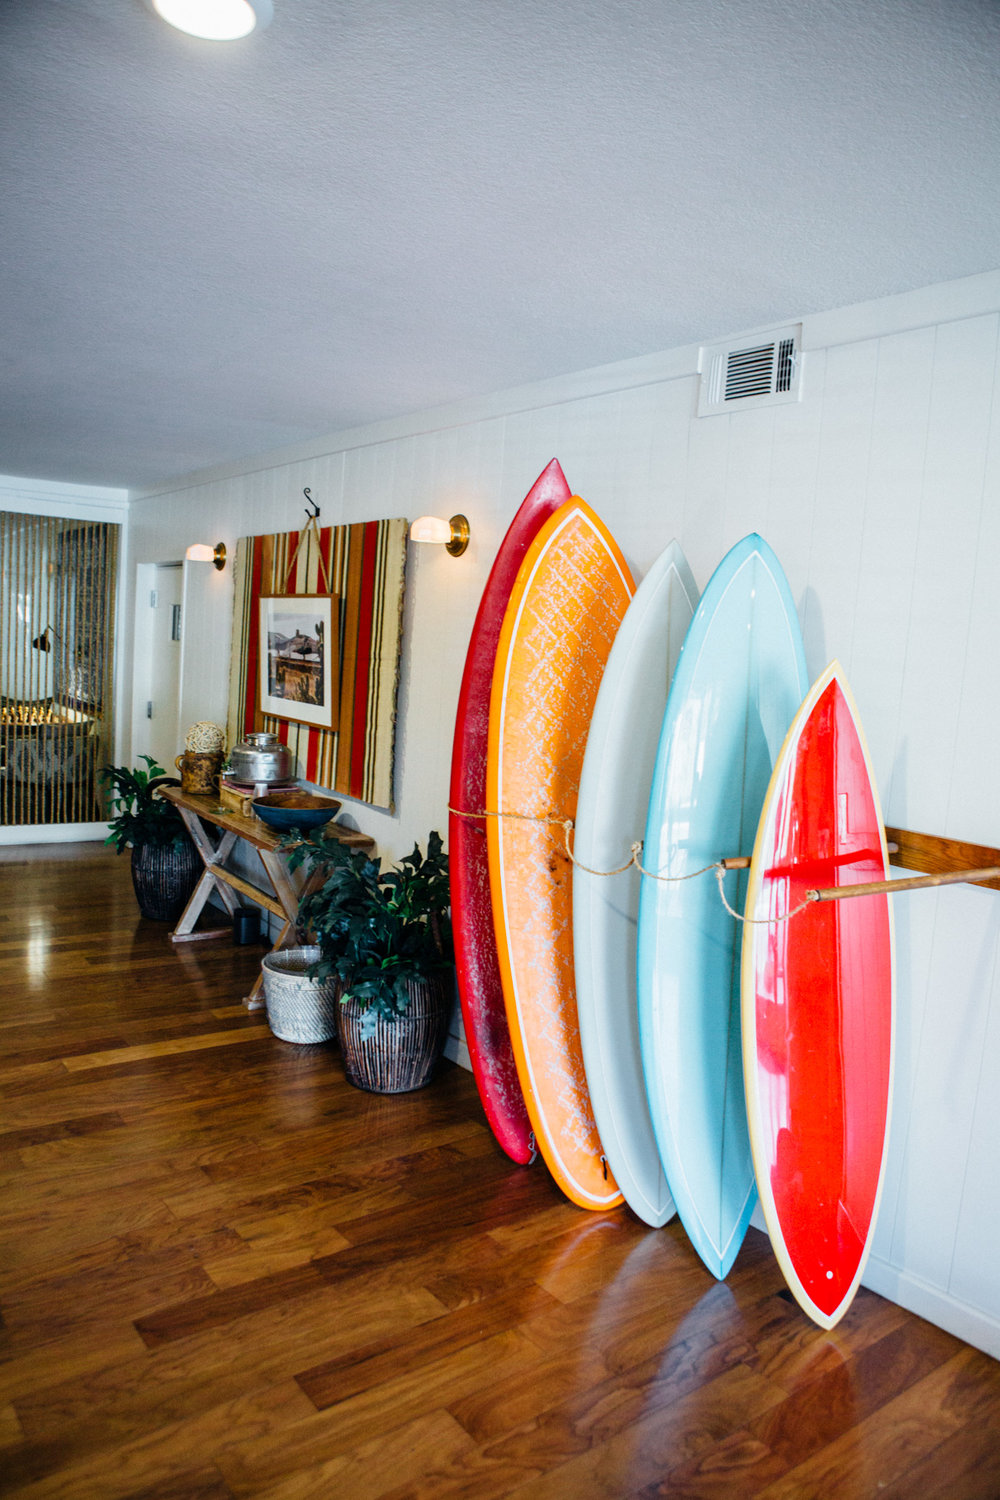 Surf boards of Laguna Beach House